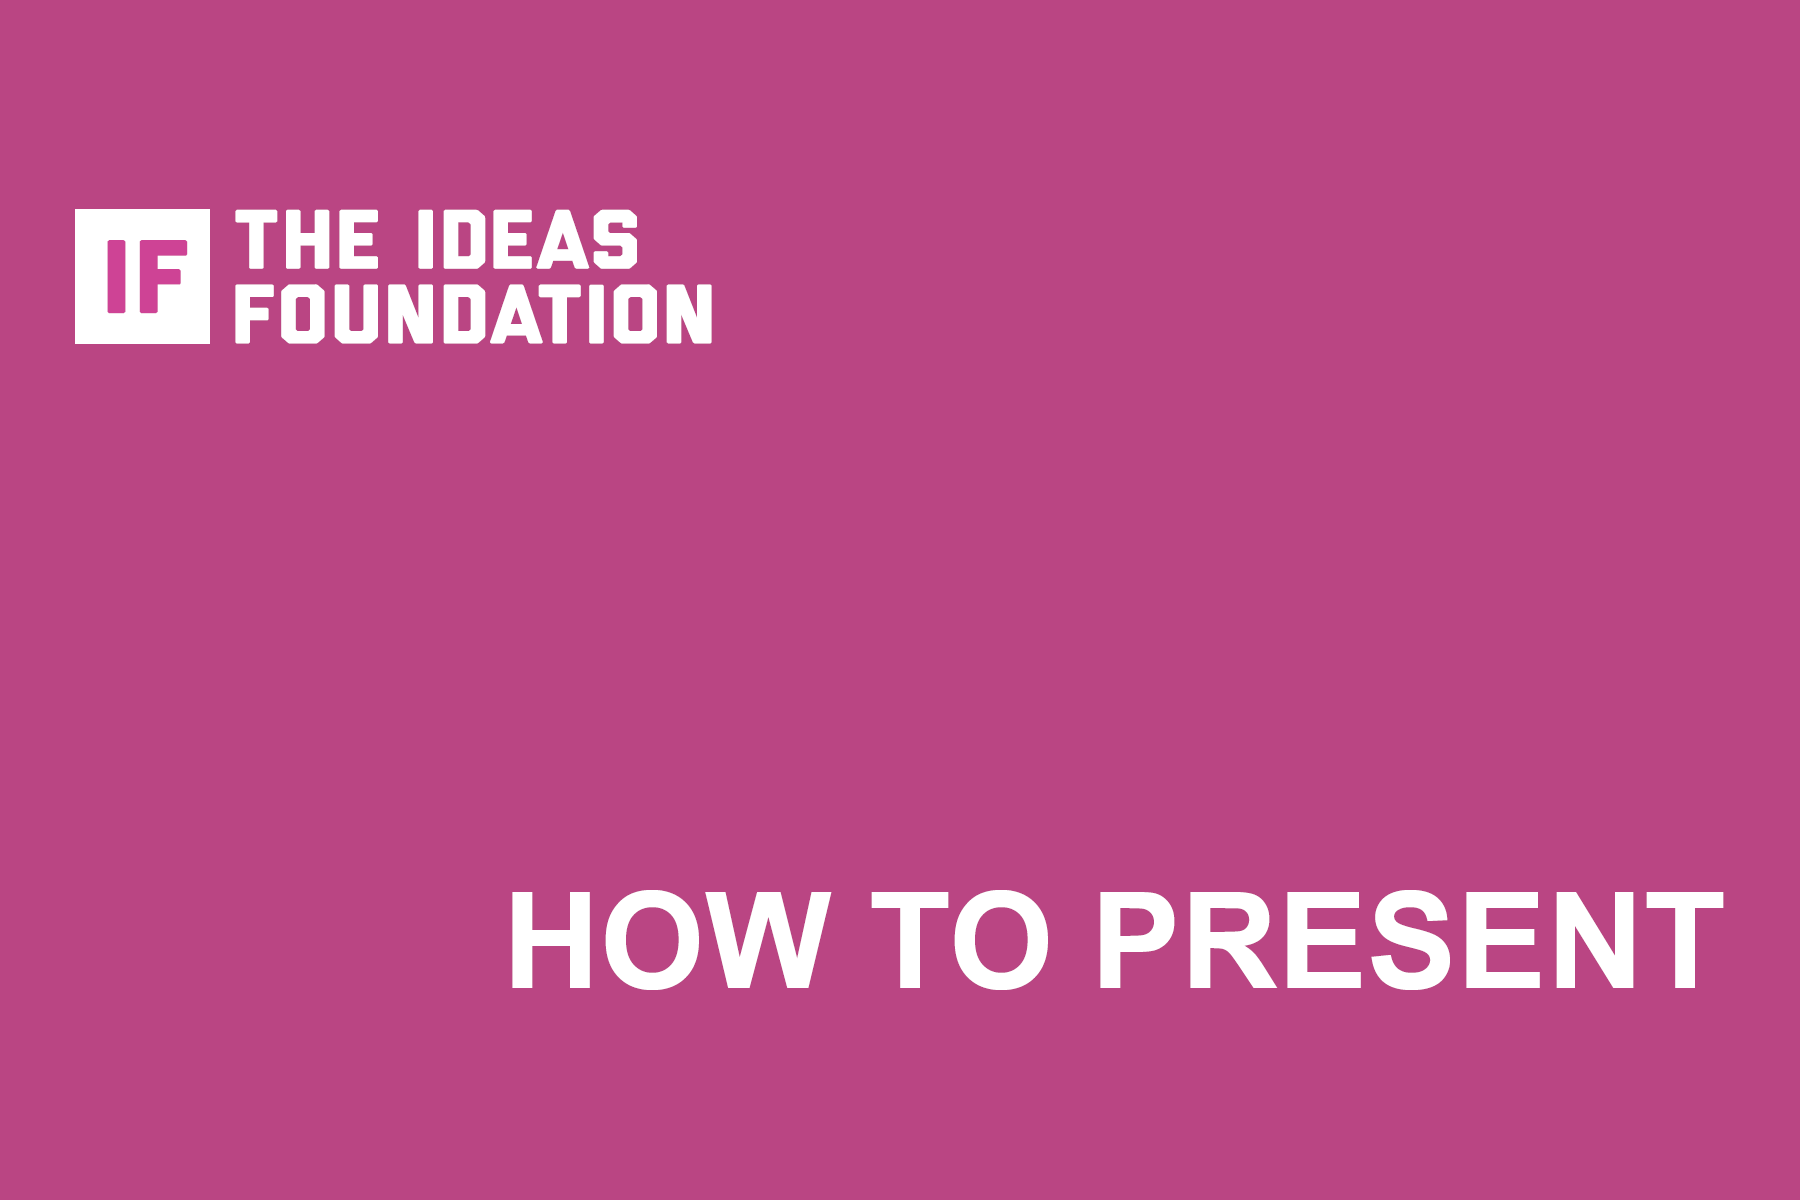 How to Present (cover image)